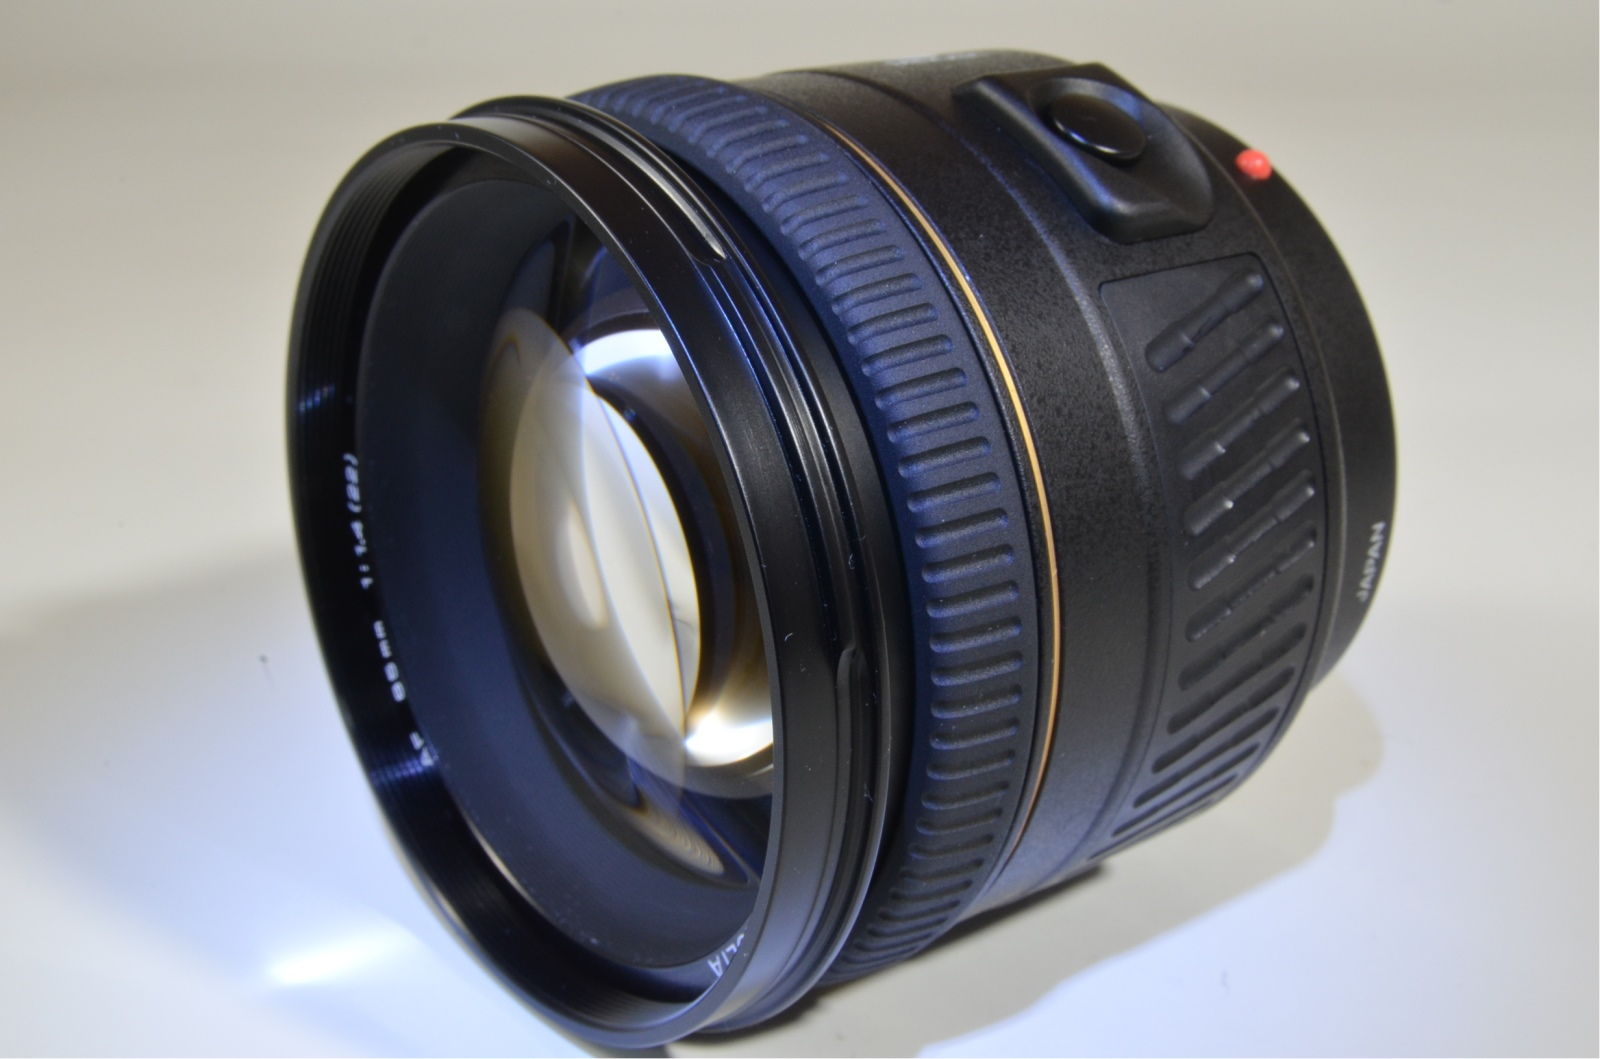 minolta af 85mm f1.4 g lens for sony alpha